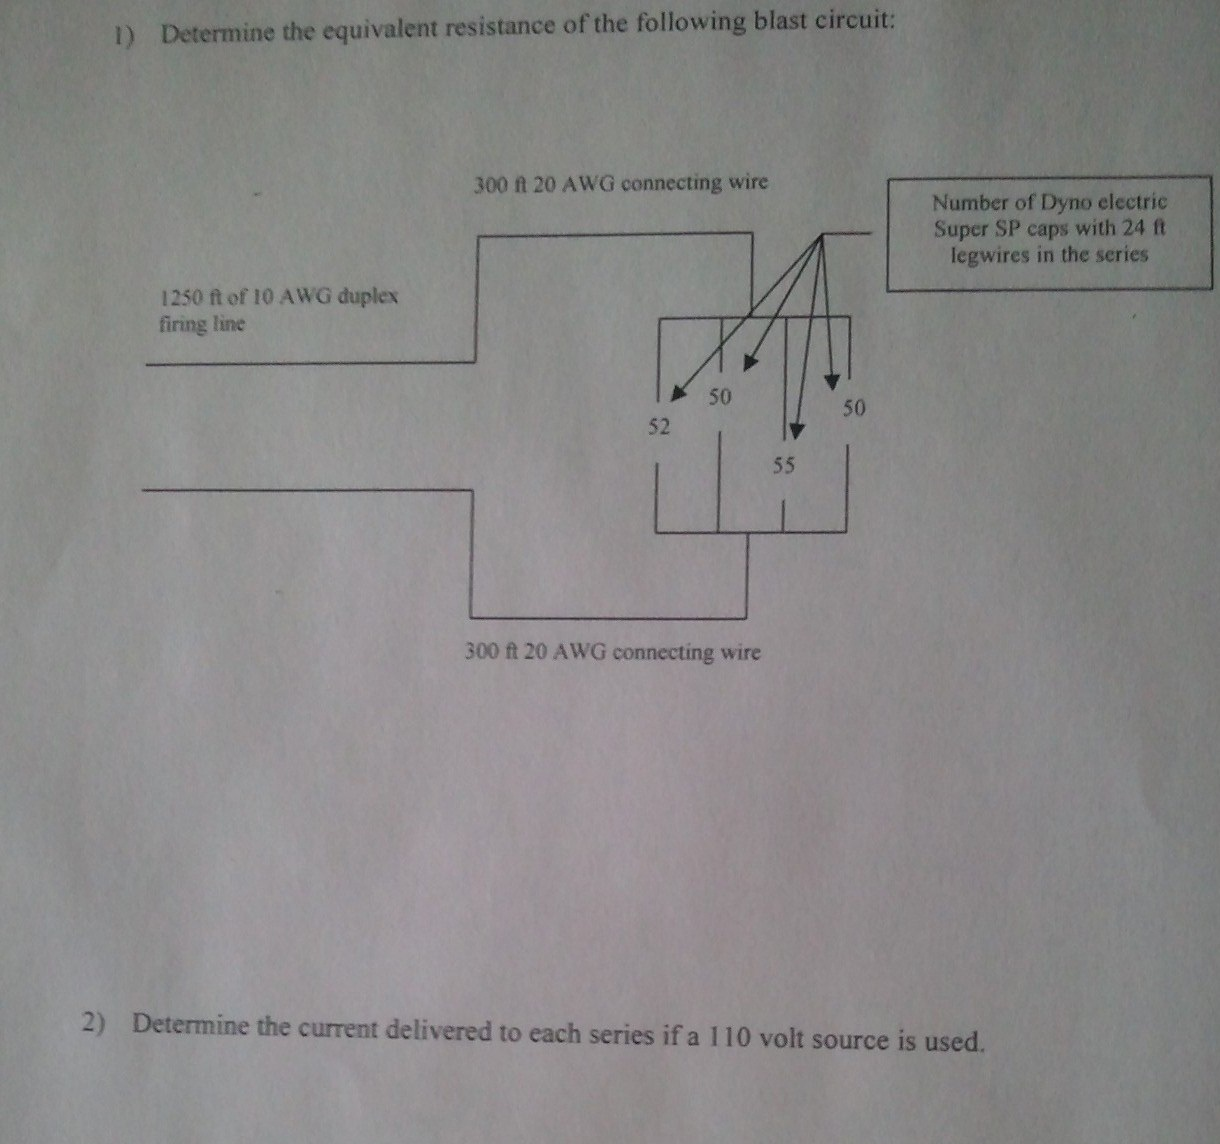 1) Determine the equivalent resistance of the foll